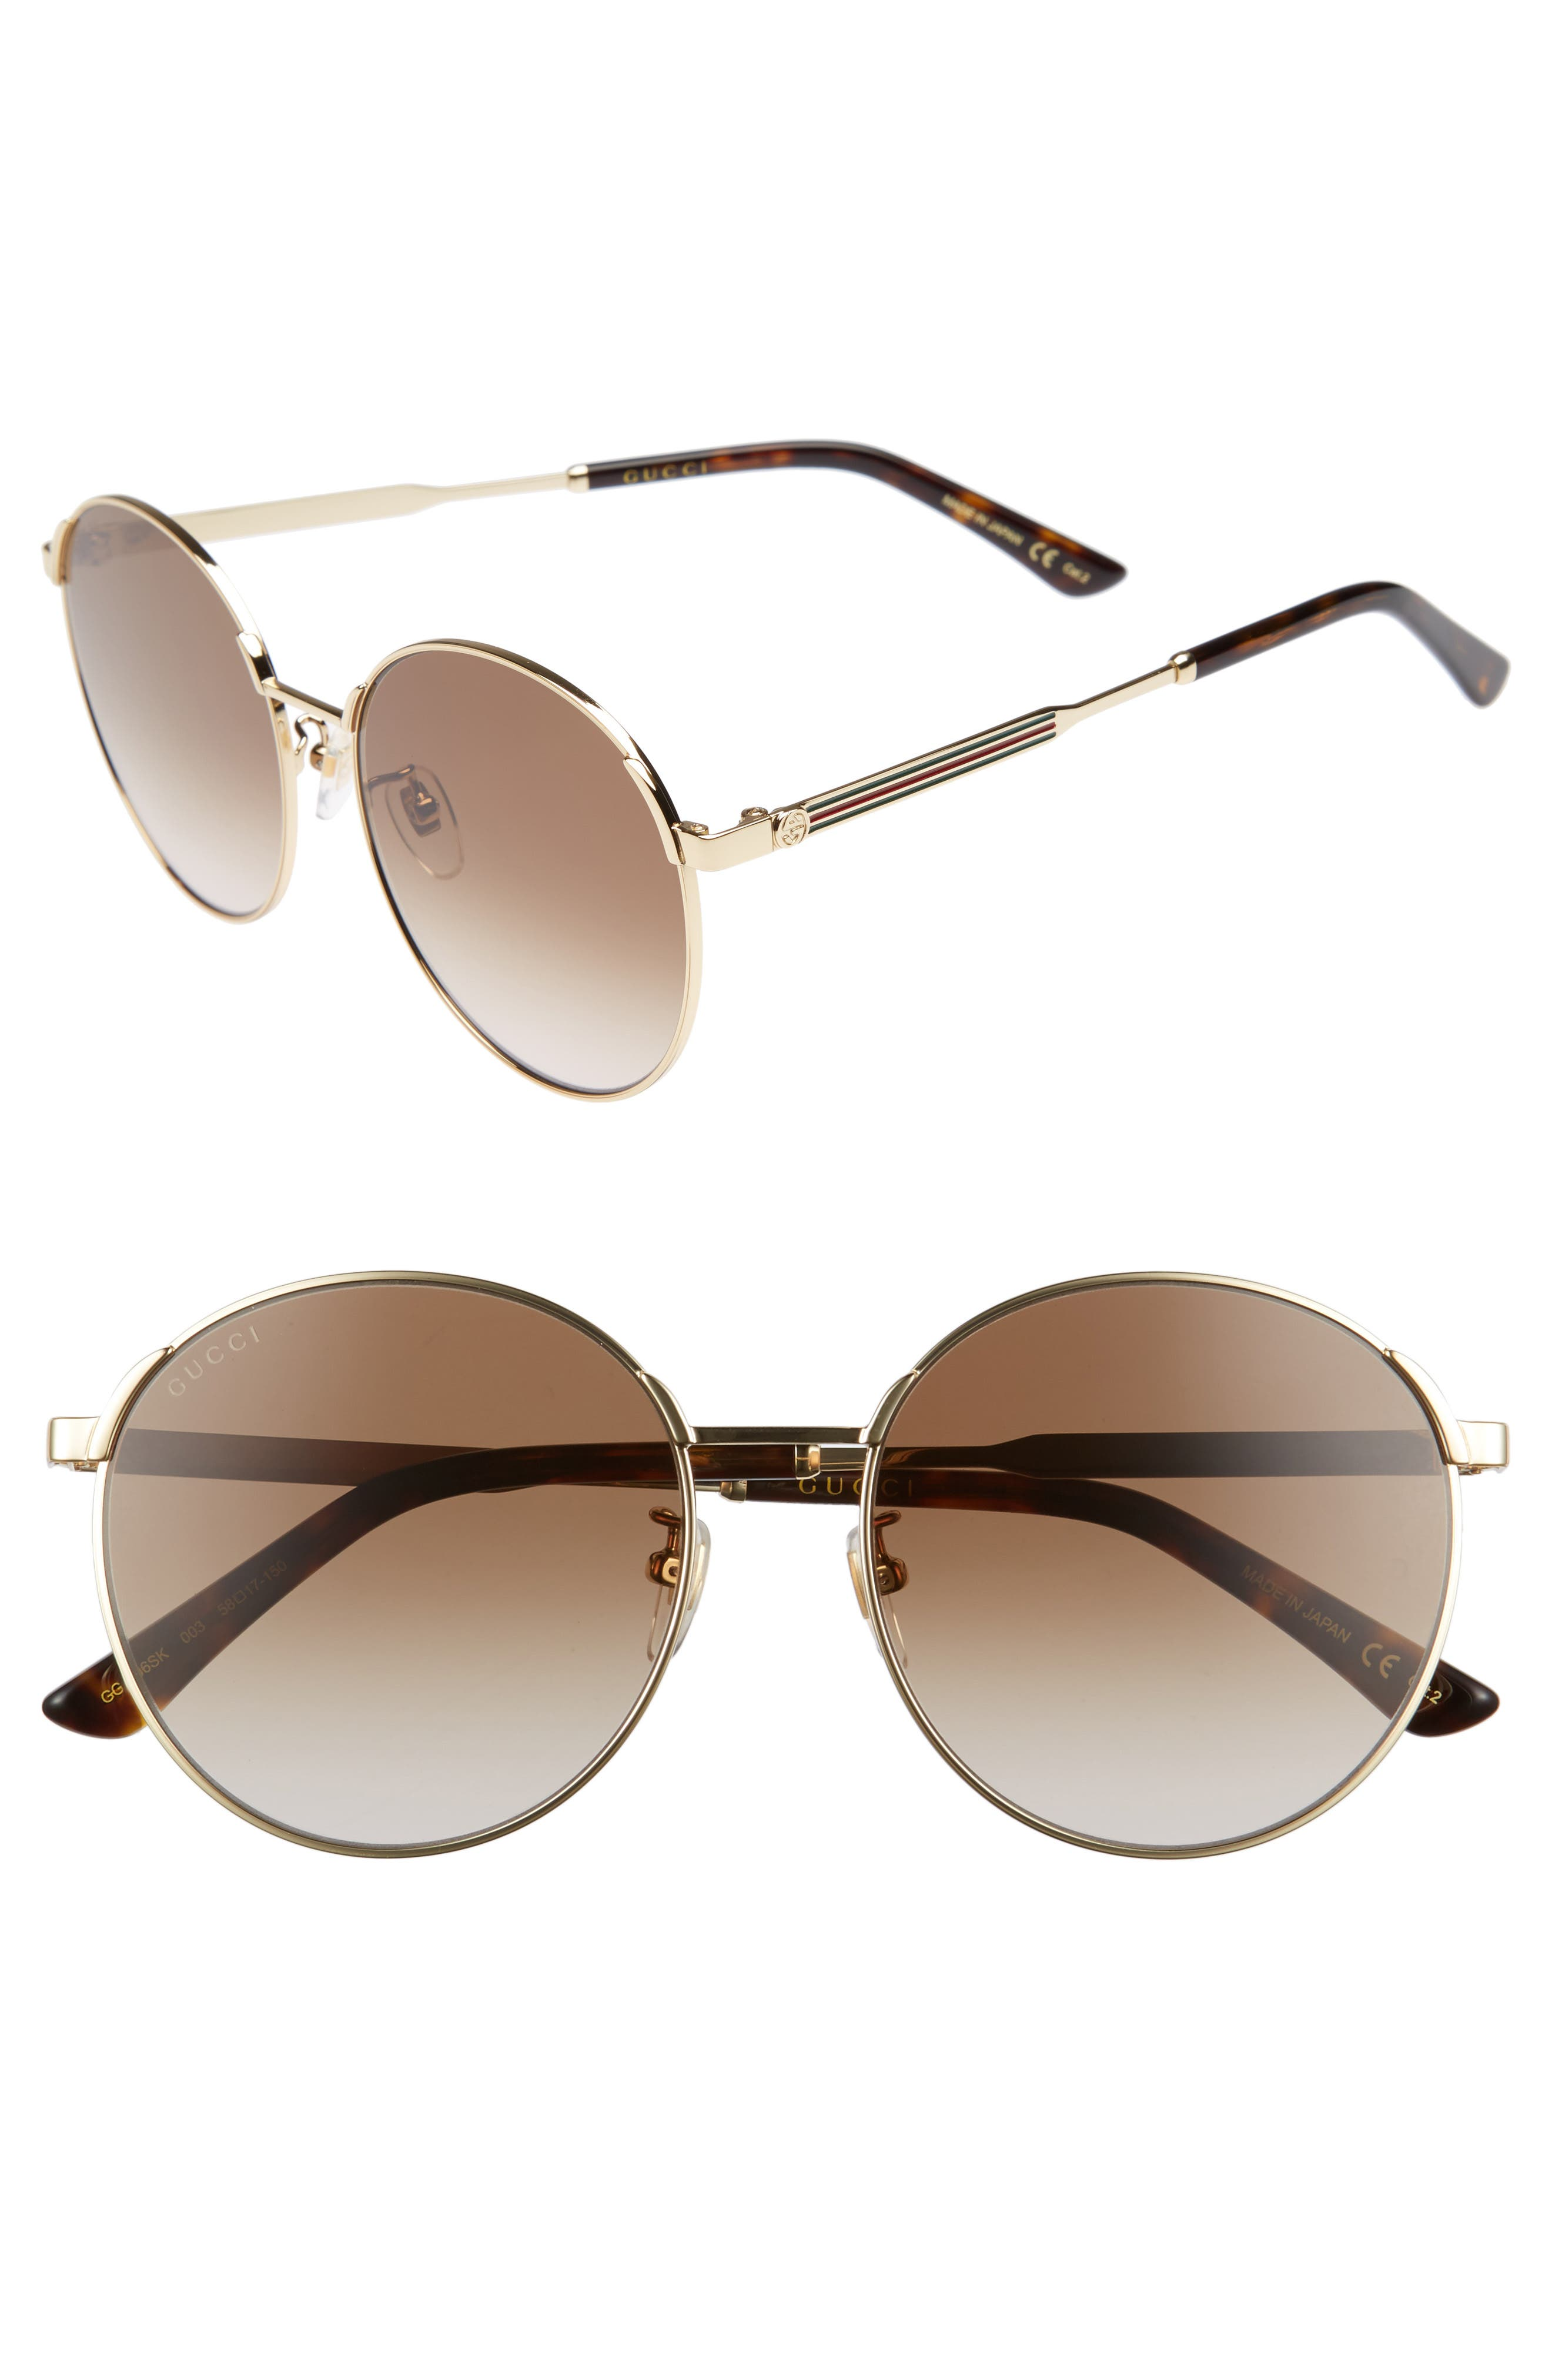 58mm Round Sunglasses,                         Main,                         color, Gold/ Brown